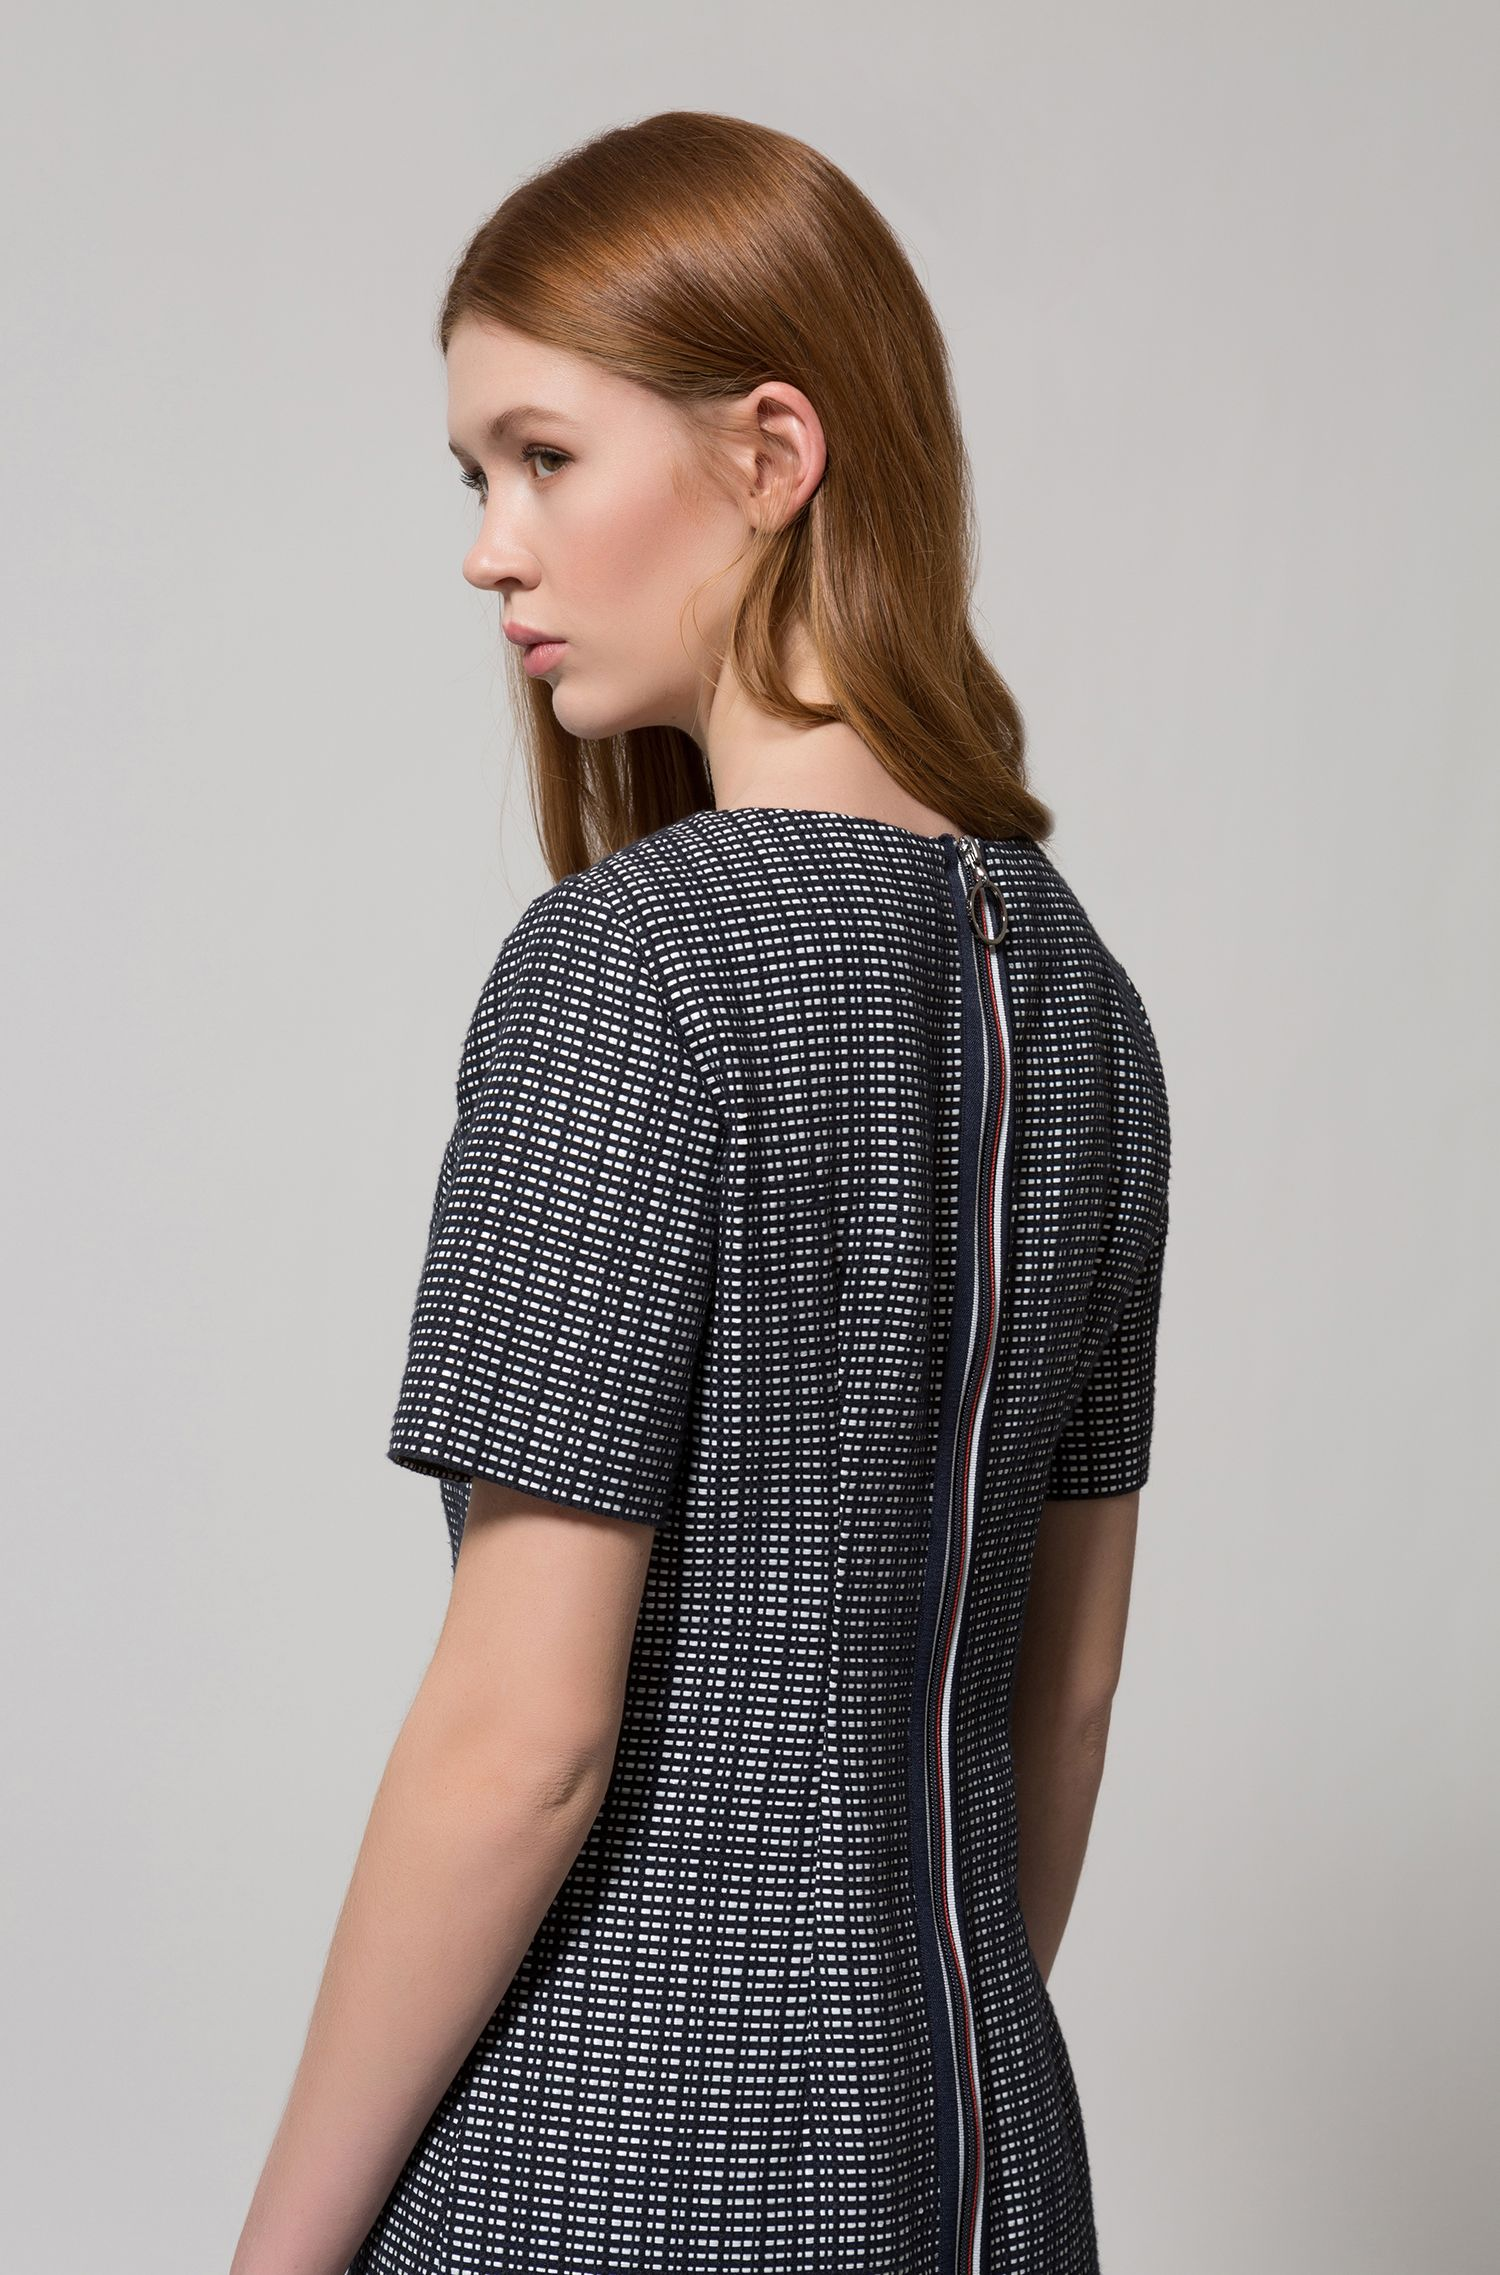 A-line dress with structured design and woven stripes